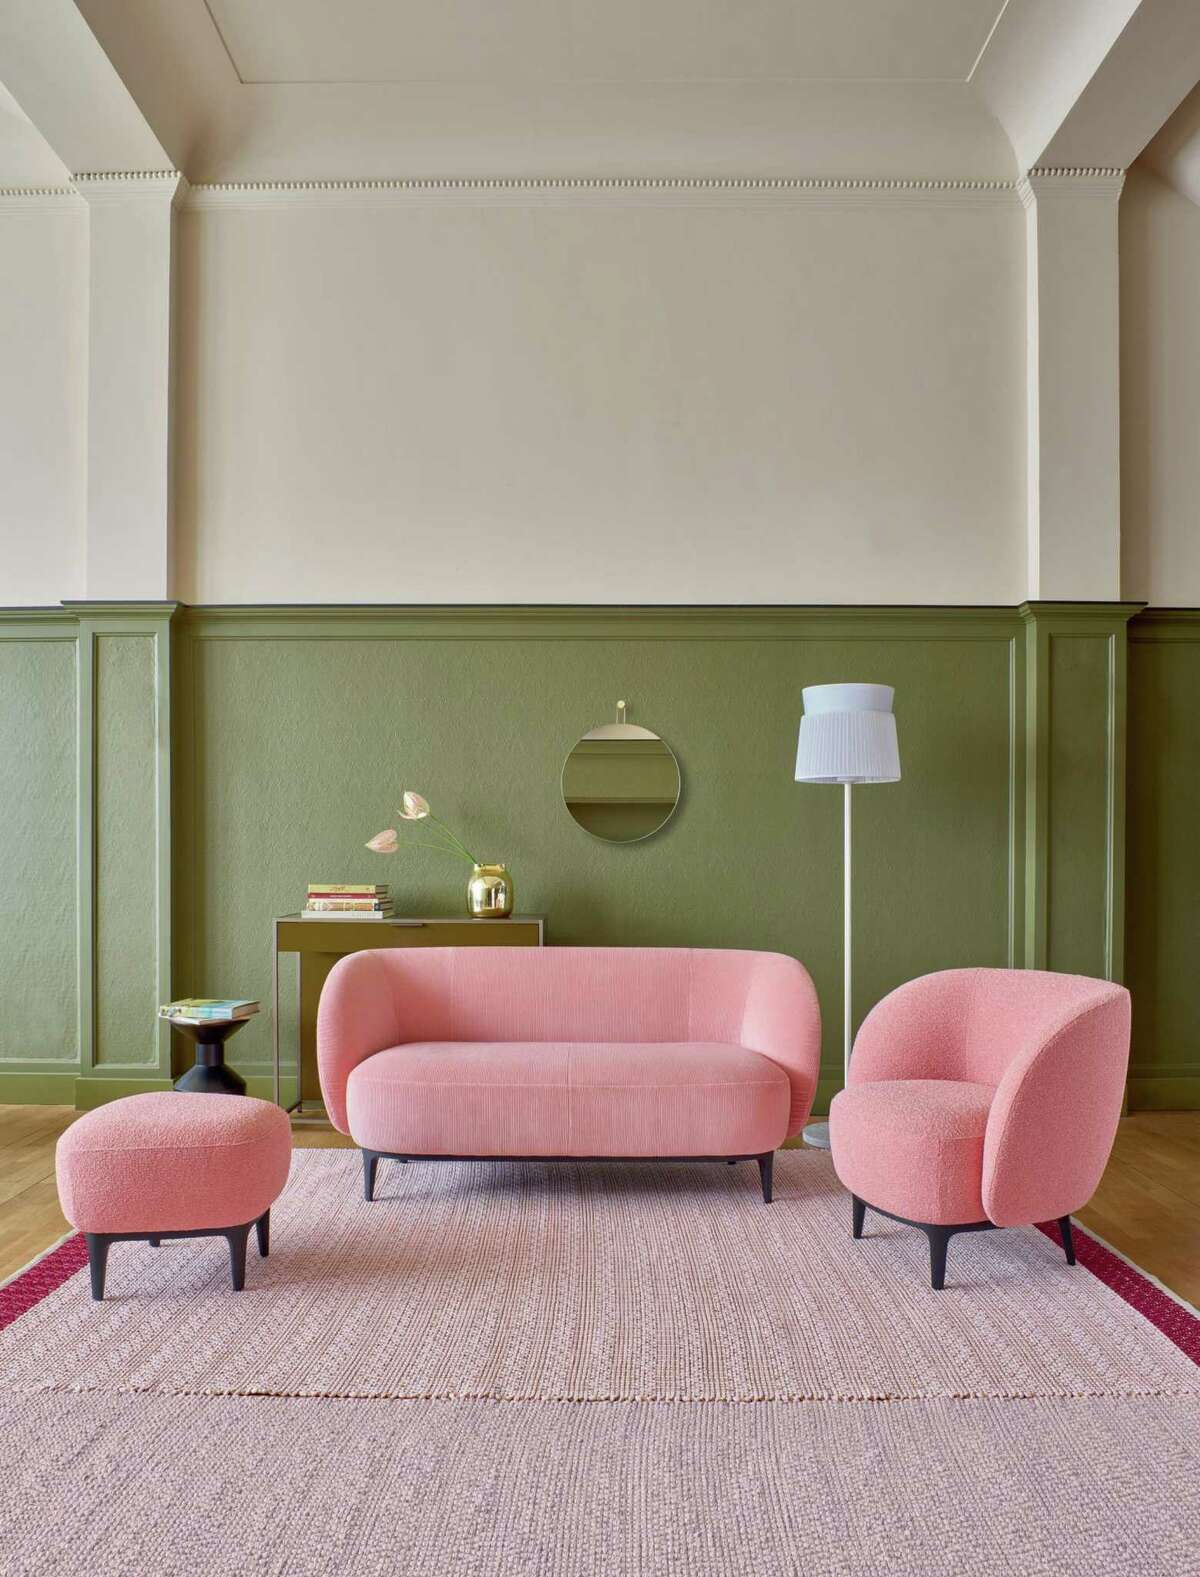 Jean-Philippe Nuel's Soufflot medium Sofa, $4,095; armchair, $2,245 and up; and ottoman, $1,160 and up.